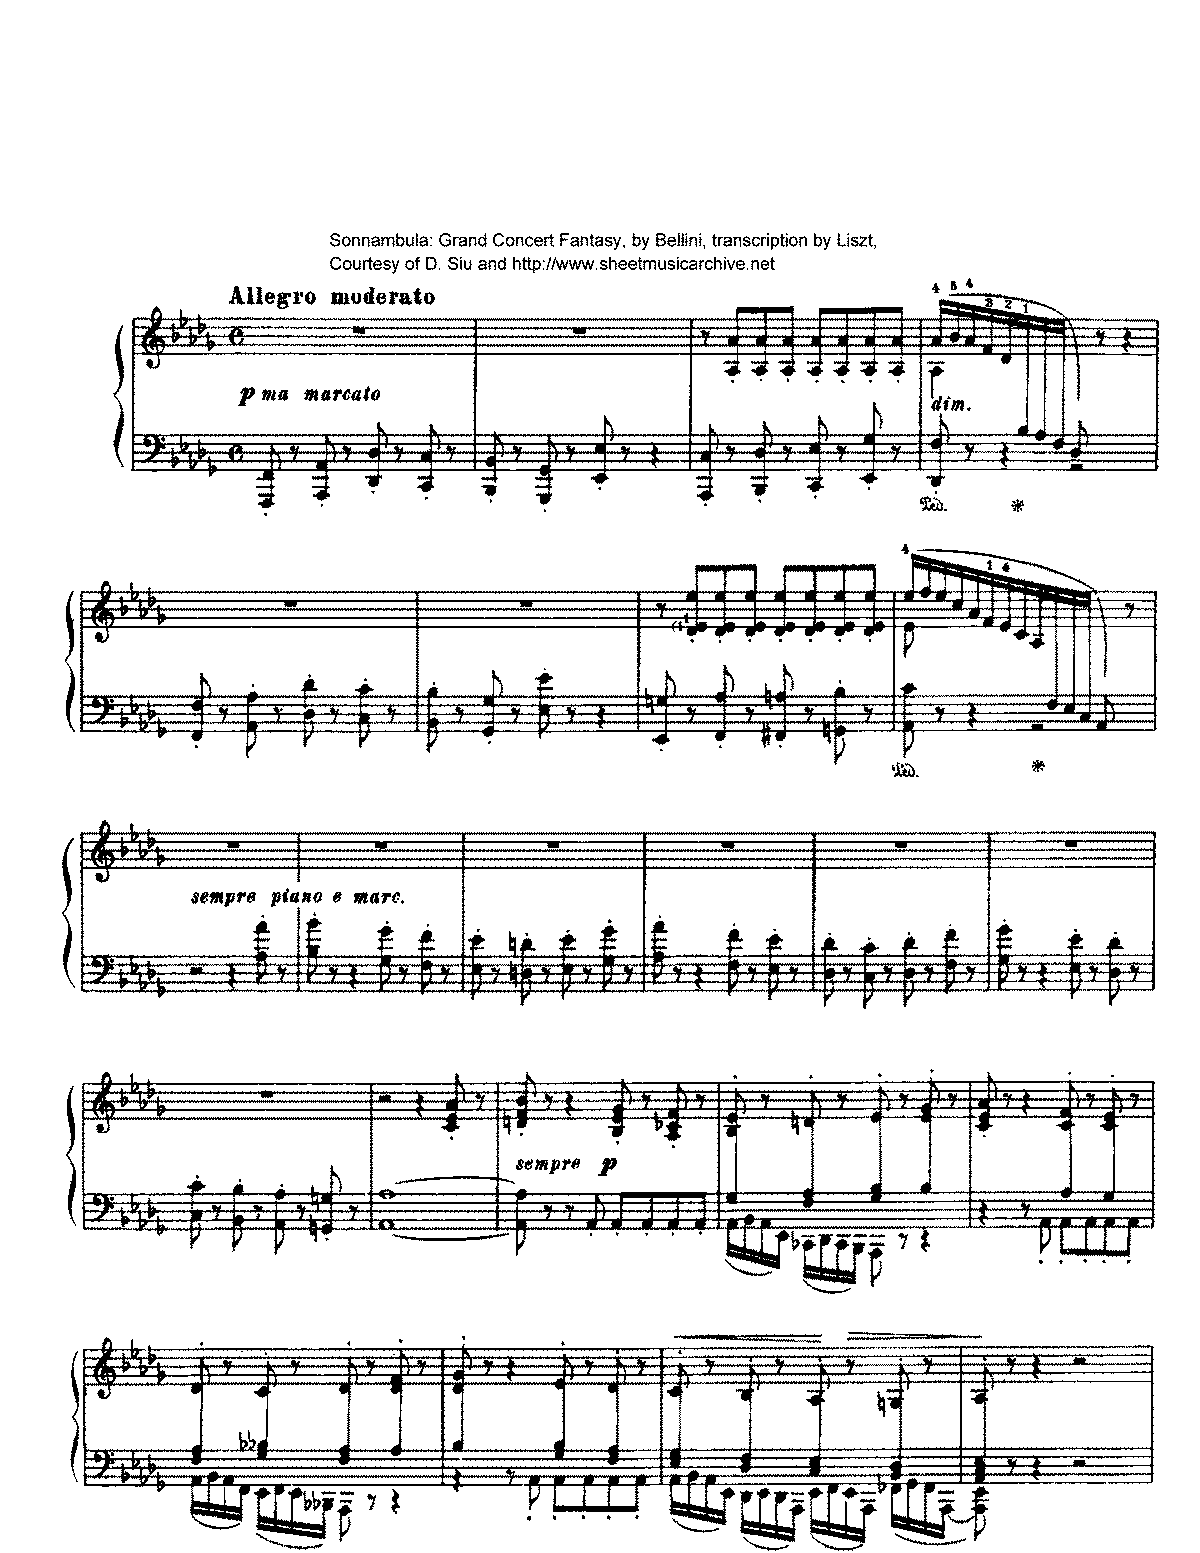 Liszt - S.393 - Grand Concert Fantasy on Sonnambula (Bellini).pdf